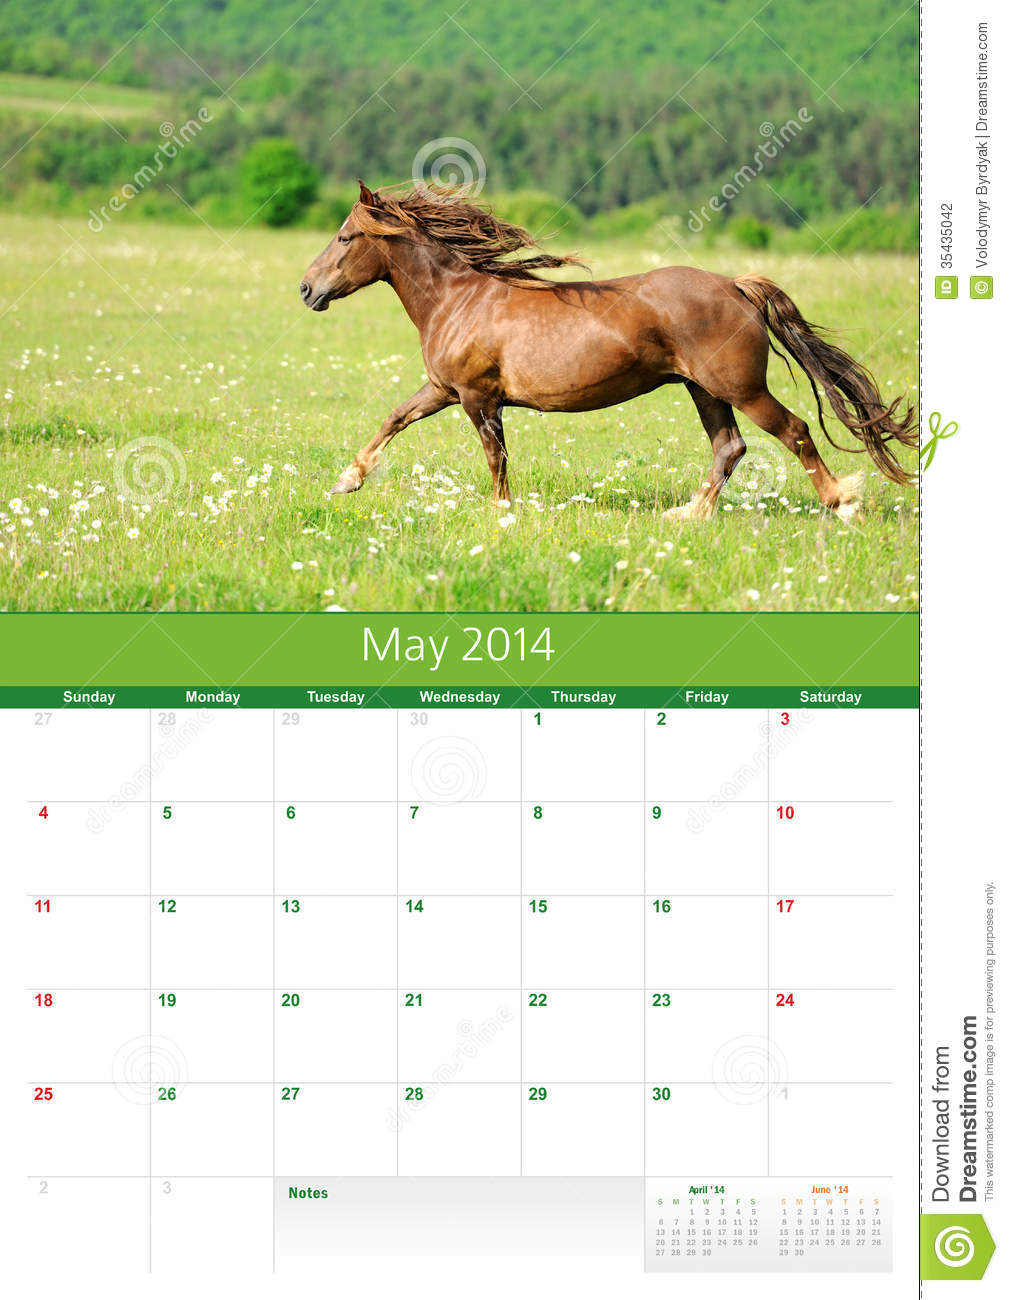 Calendar Monthly For Print : Calendar horse may stock photo image of week